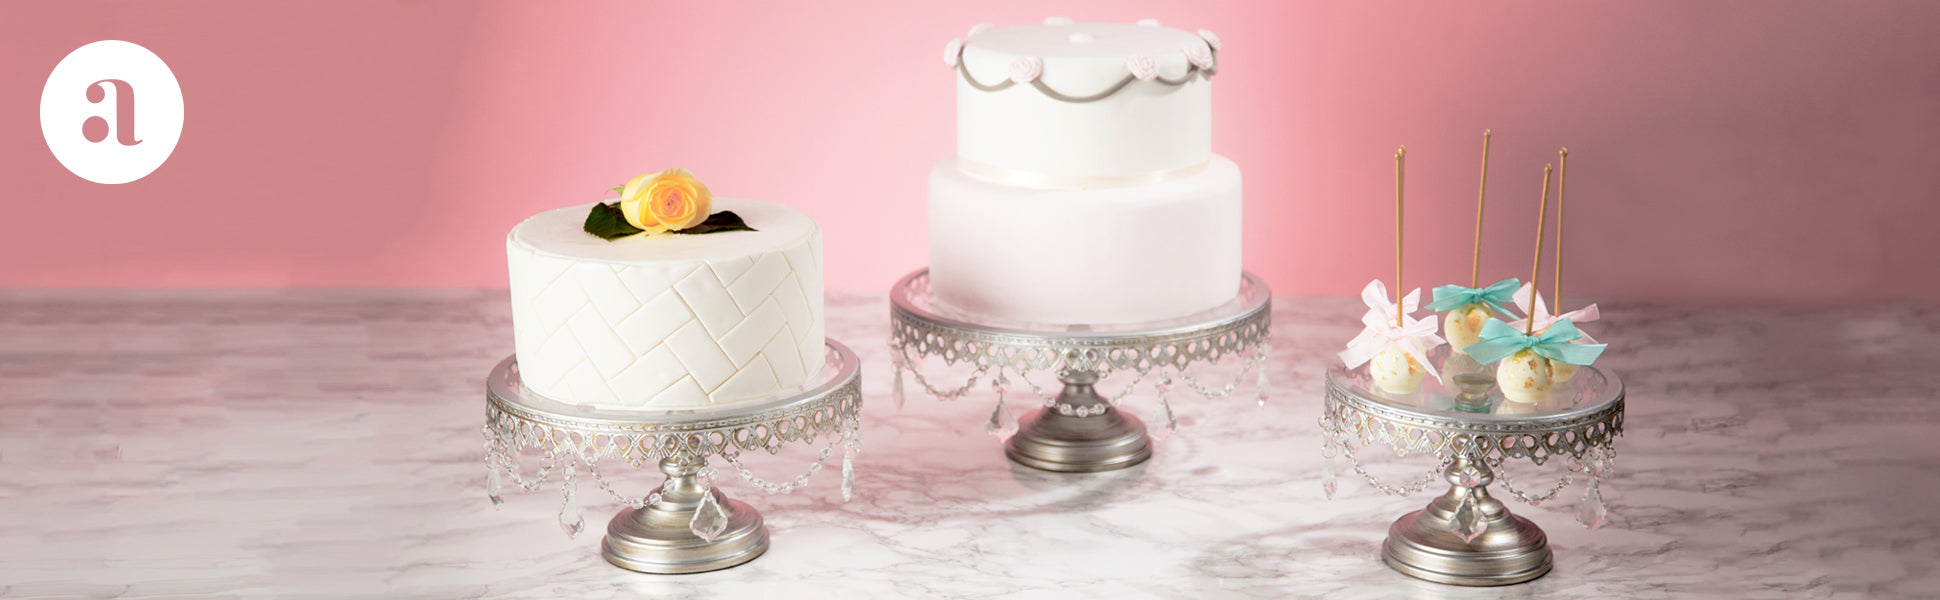 Gold and Silver Dessert Stands | Amalfi Decor – Tagged "|1940|600|?|en|2|7a0b9ead171d73dc1d60bff2cdba8bf4|False|UNLIKELY|0.2986108064651489